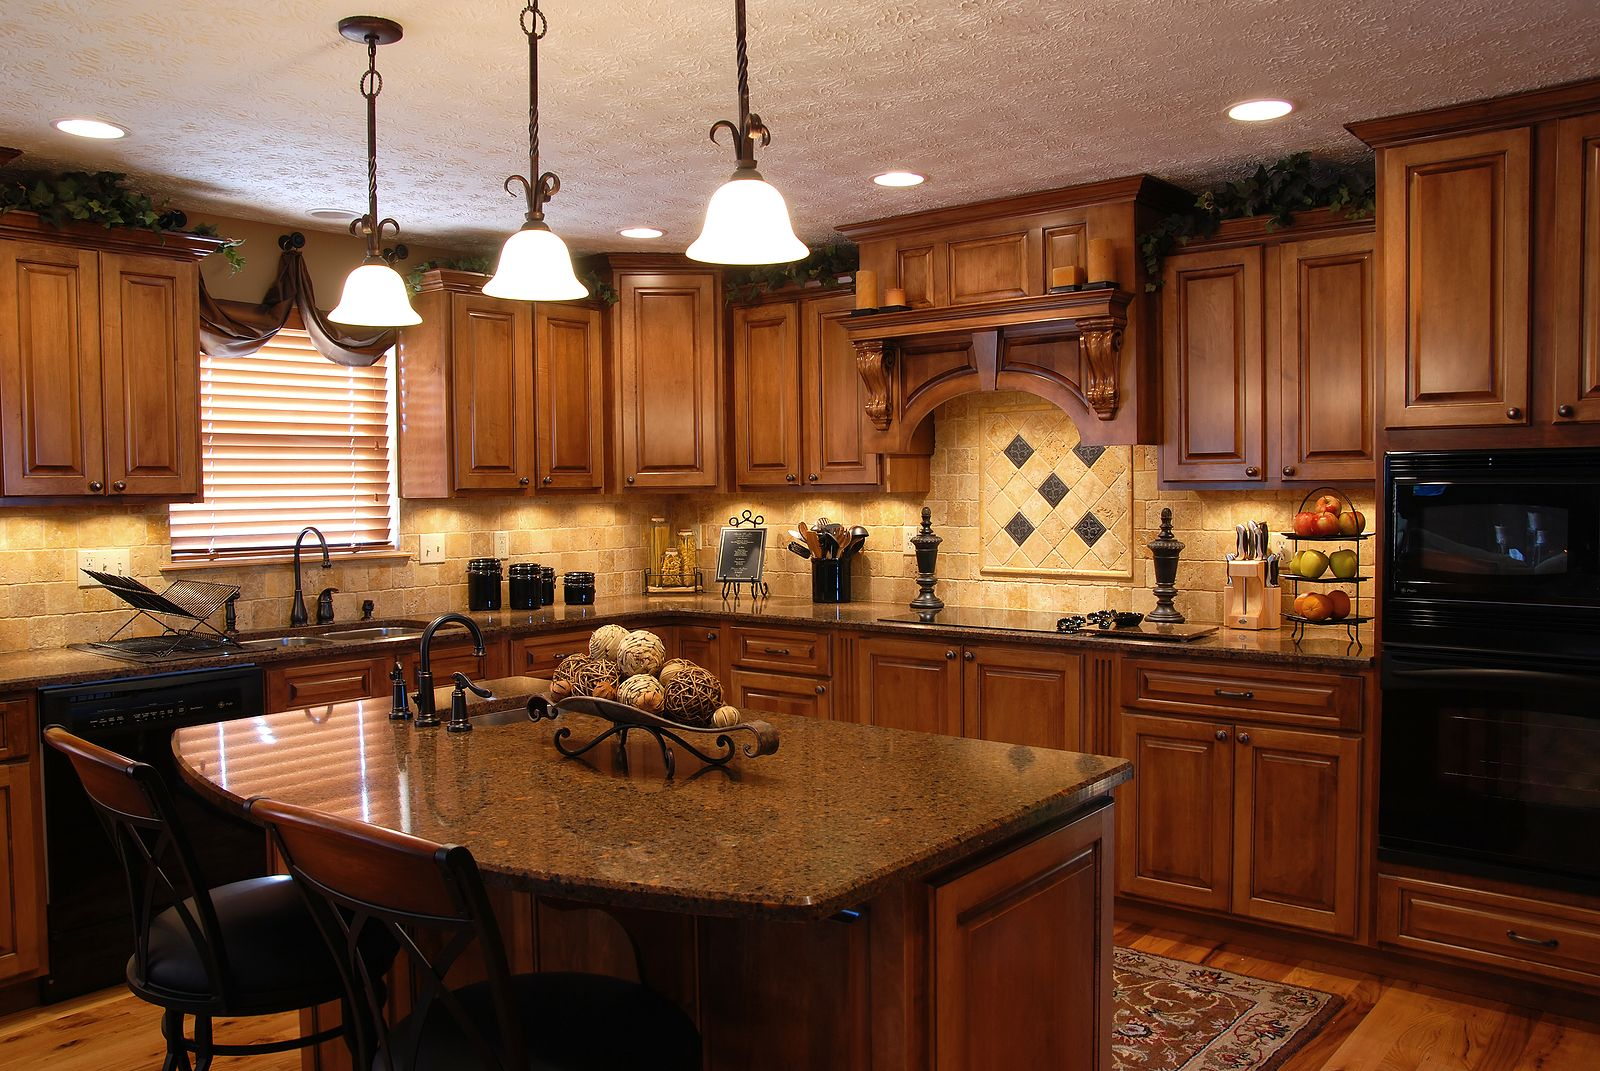 Beautiful Tuscan Kitchen Designs 20 Beautiful Kitchen Cabinet Designs  Home Design White Pendants